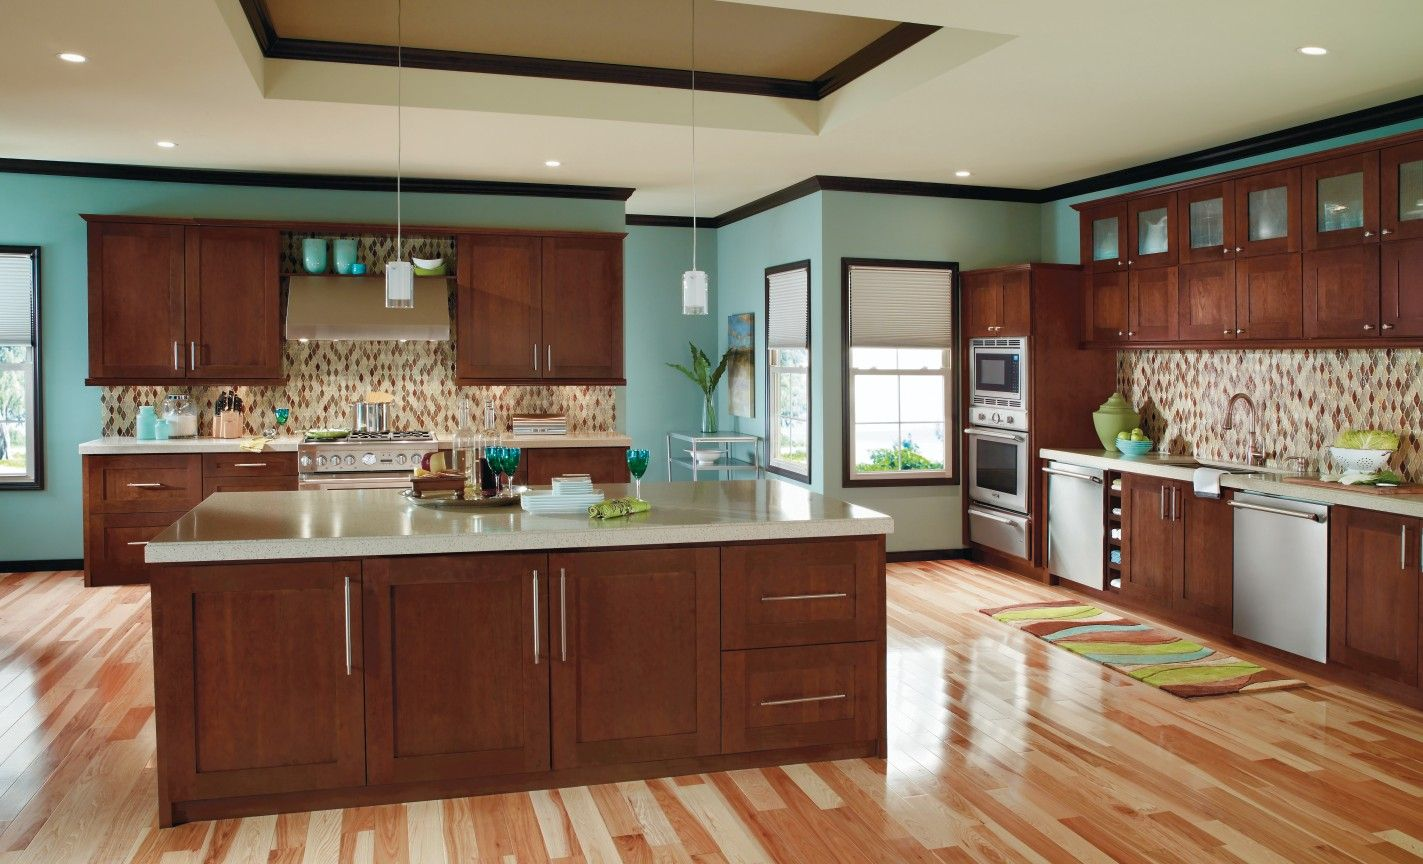 Premium kitchen cabinets by decora in rich arlington finish on cherry wood combine with naturally finished